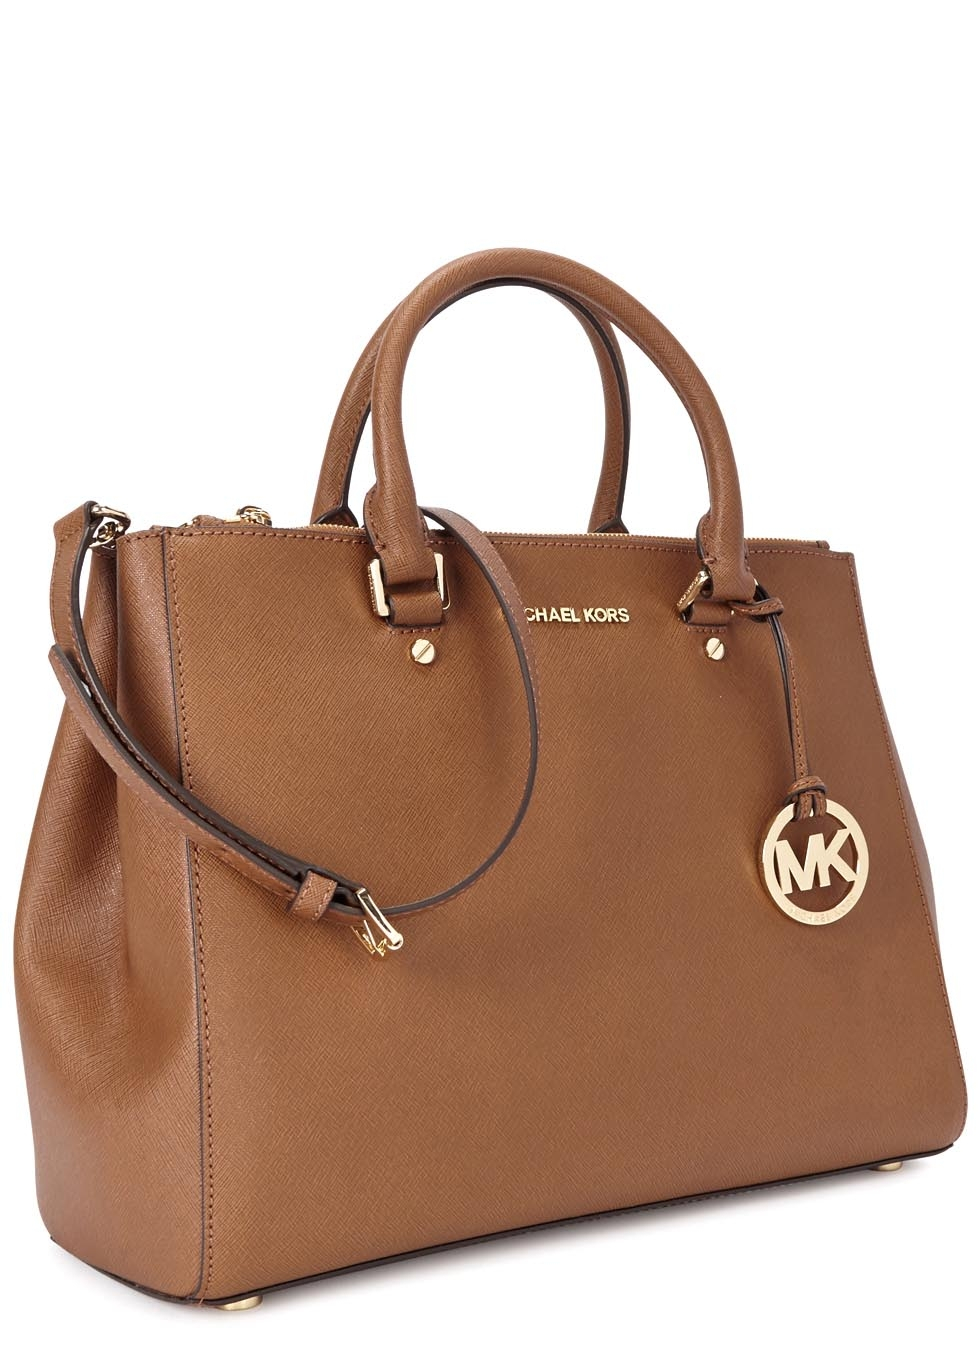 13bdaeaa5838 ... new style michael kors sutton large tawny leather tote in brown lyst  8f383 a18fe